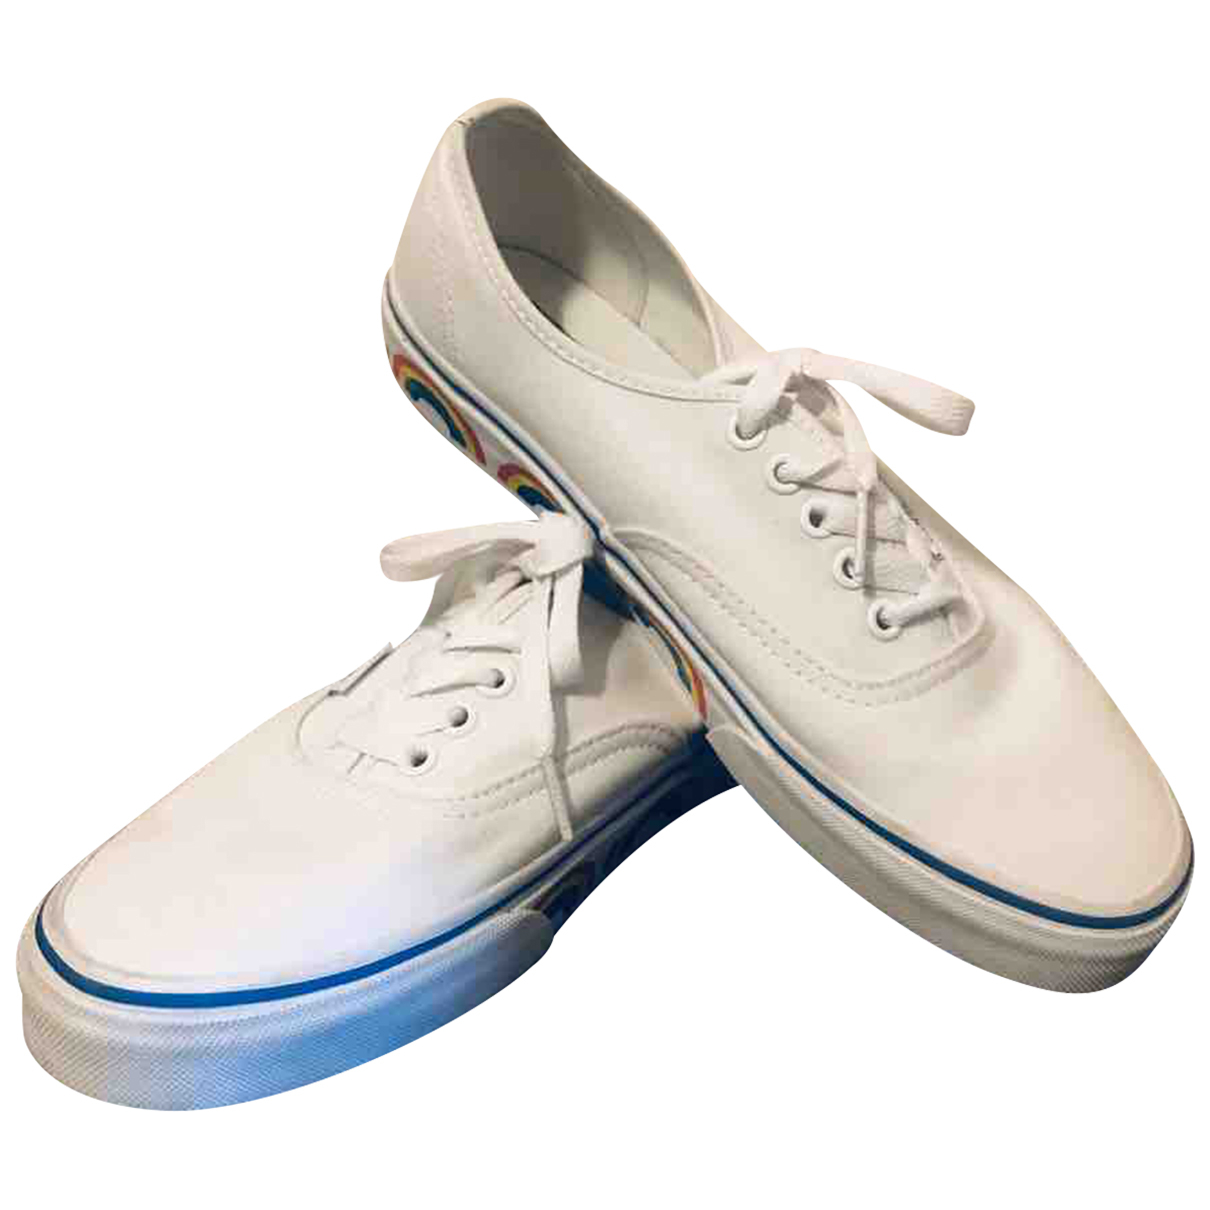 Vans N White Cloth Trainers for Women 40.5 EU